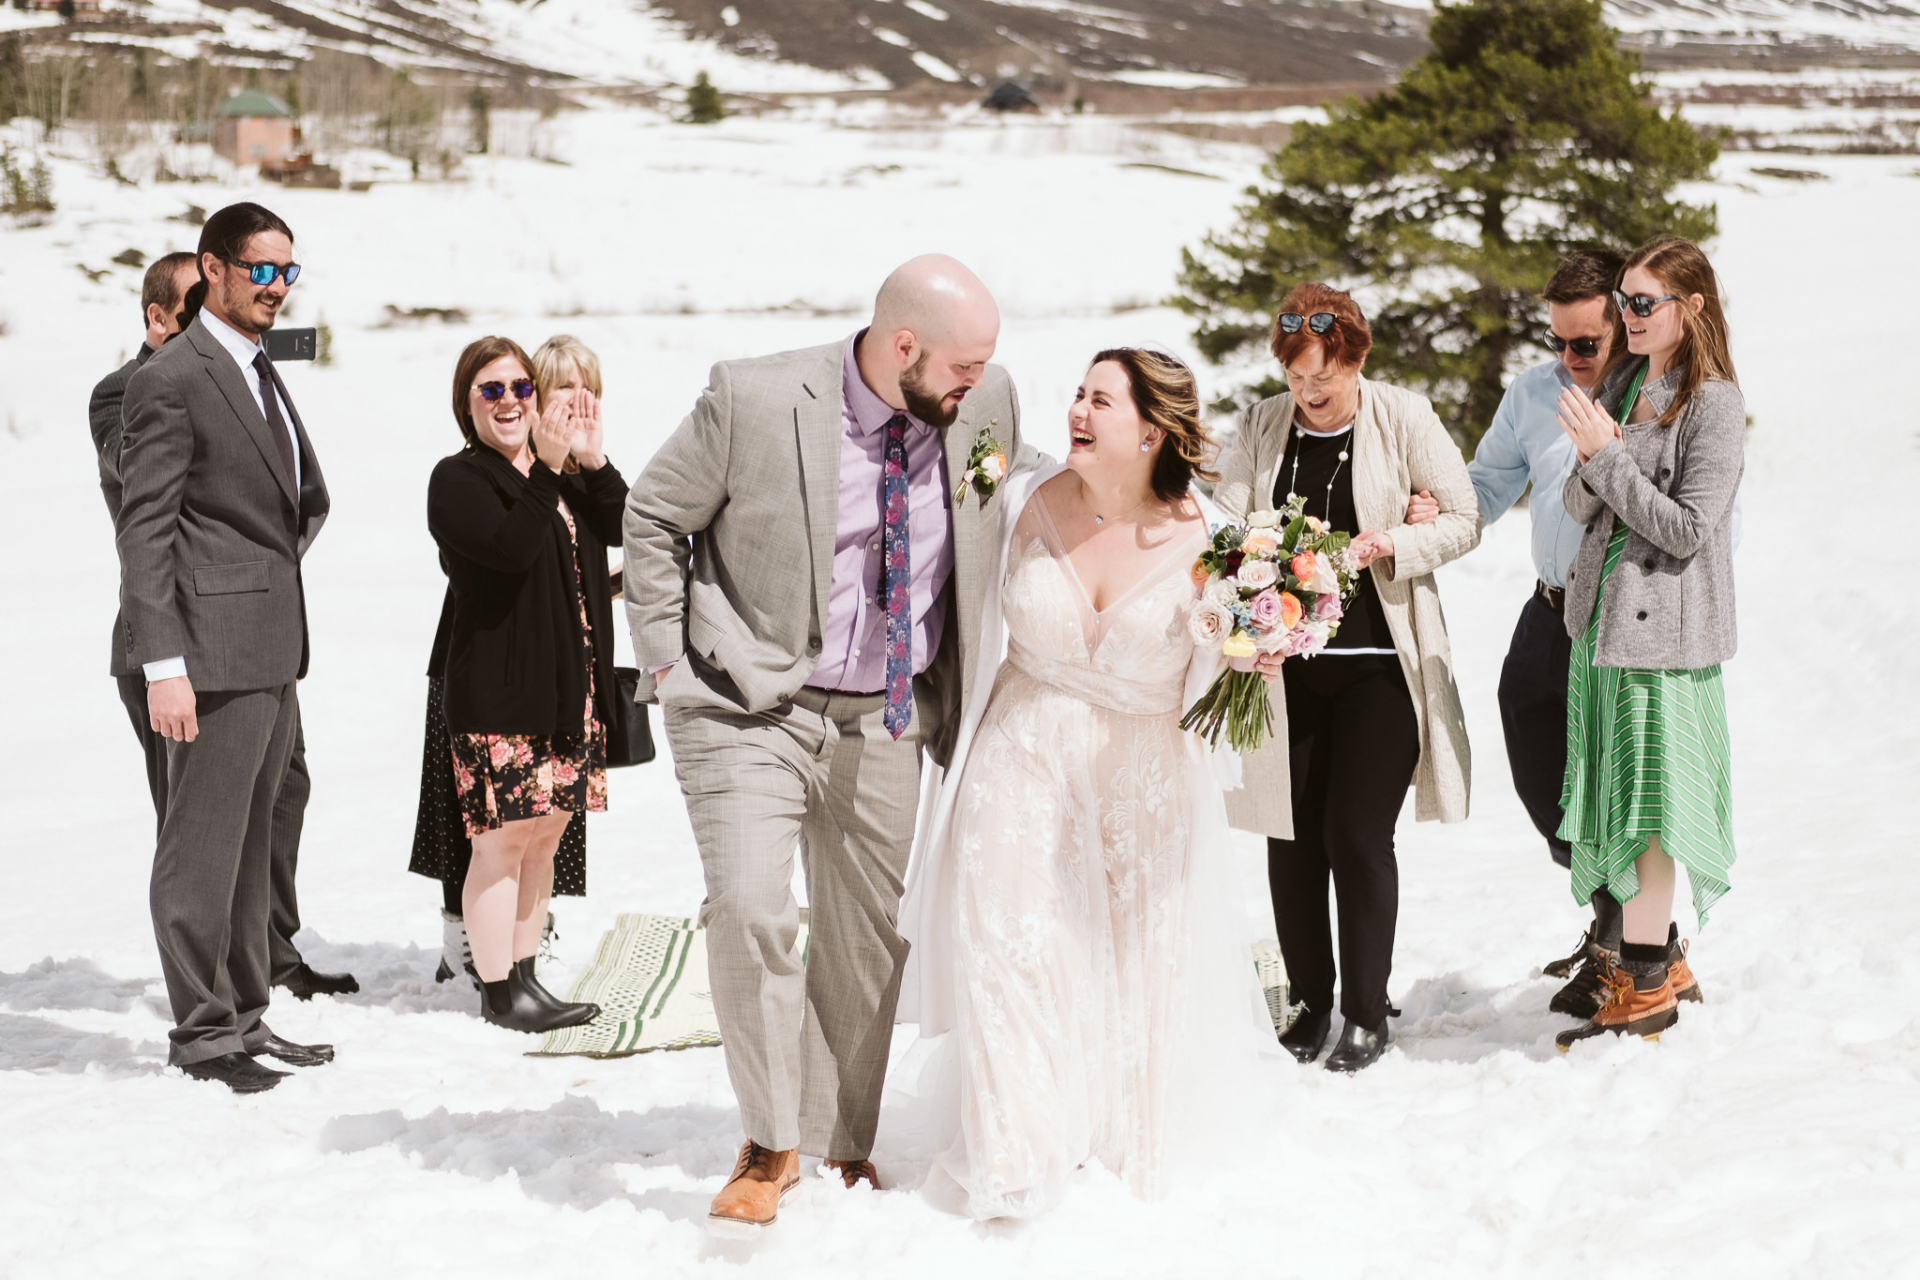 Colorado Winter Elopement Ceremony Photo | Couple walks back down the snow-covered aisle together after pronouncing themselves married